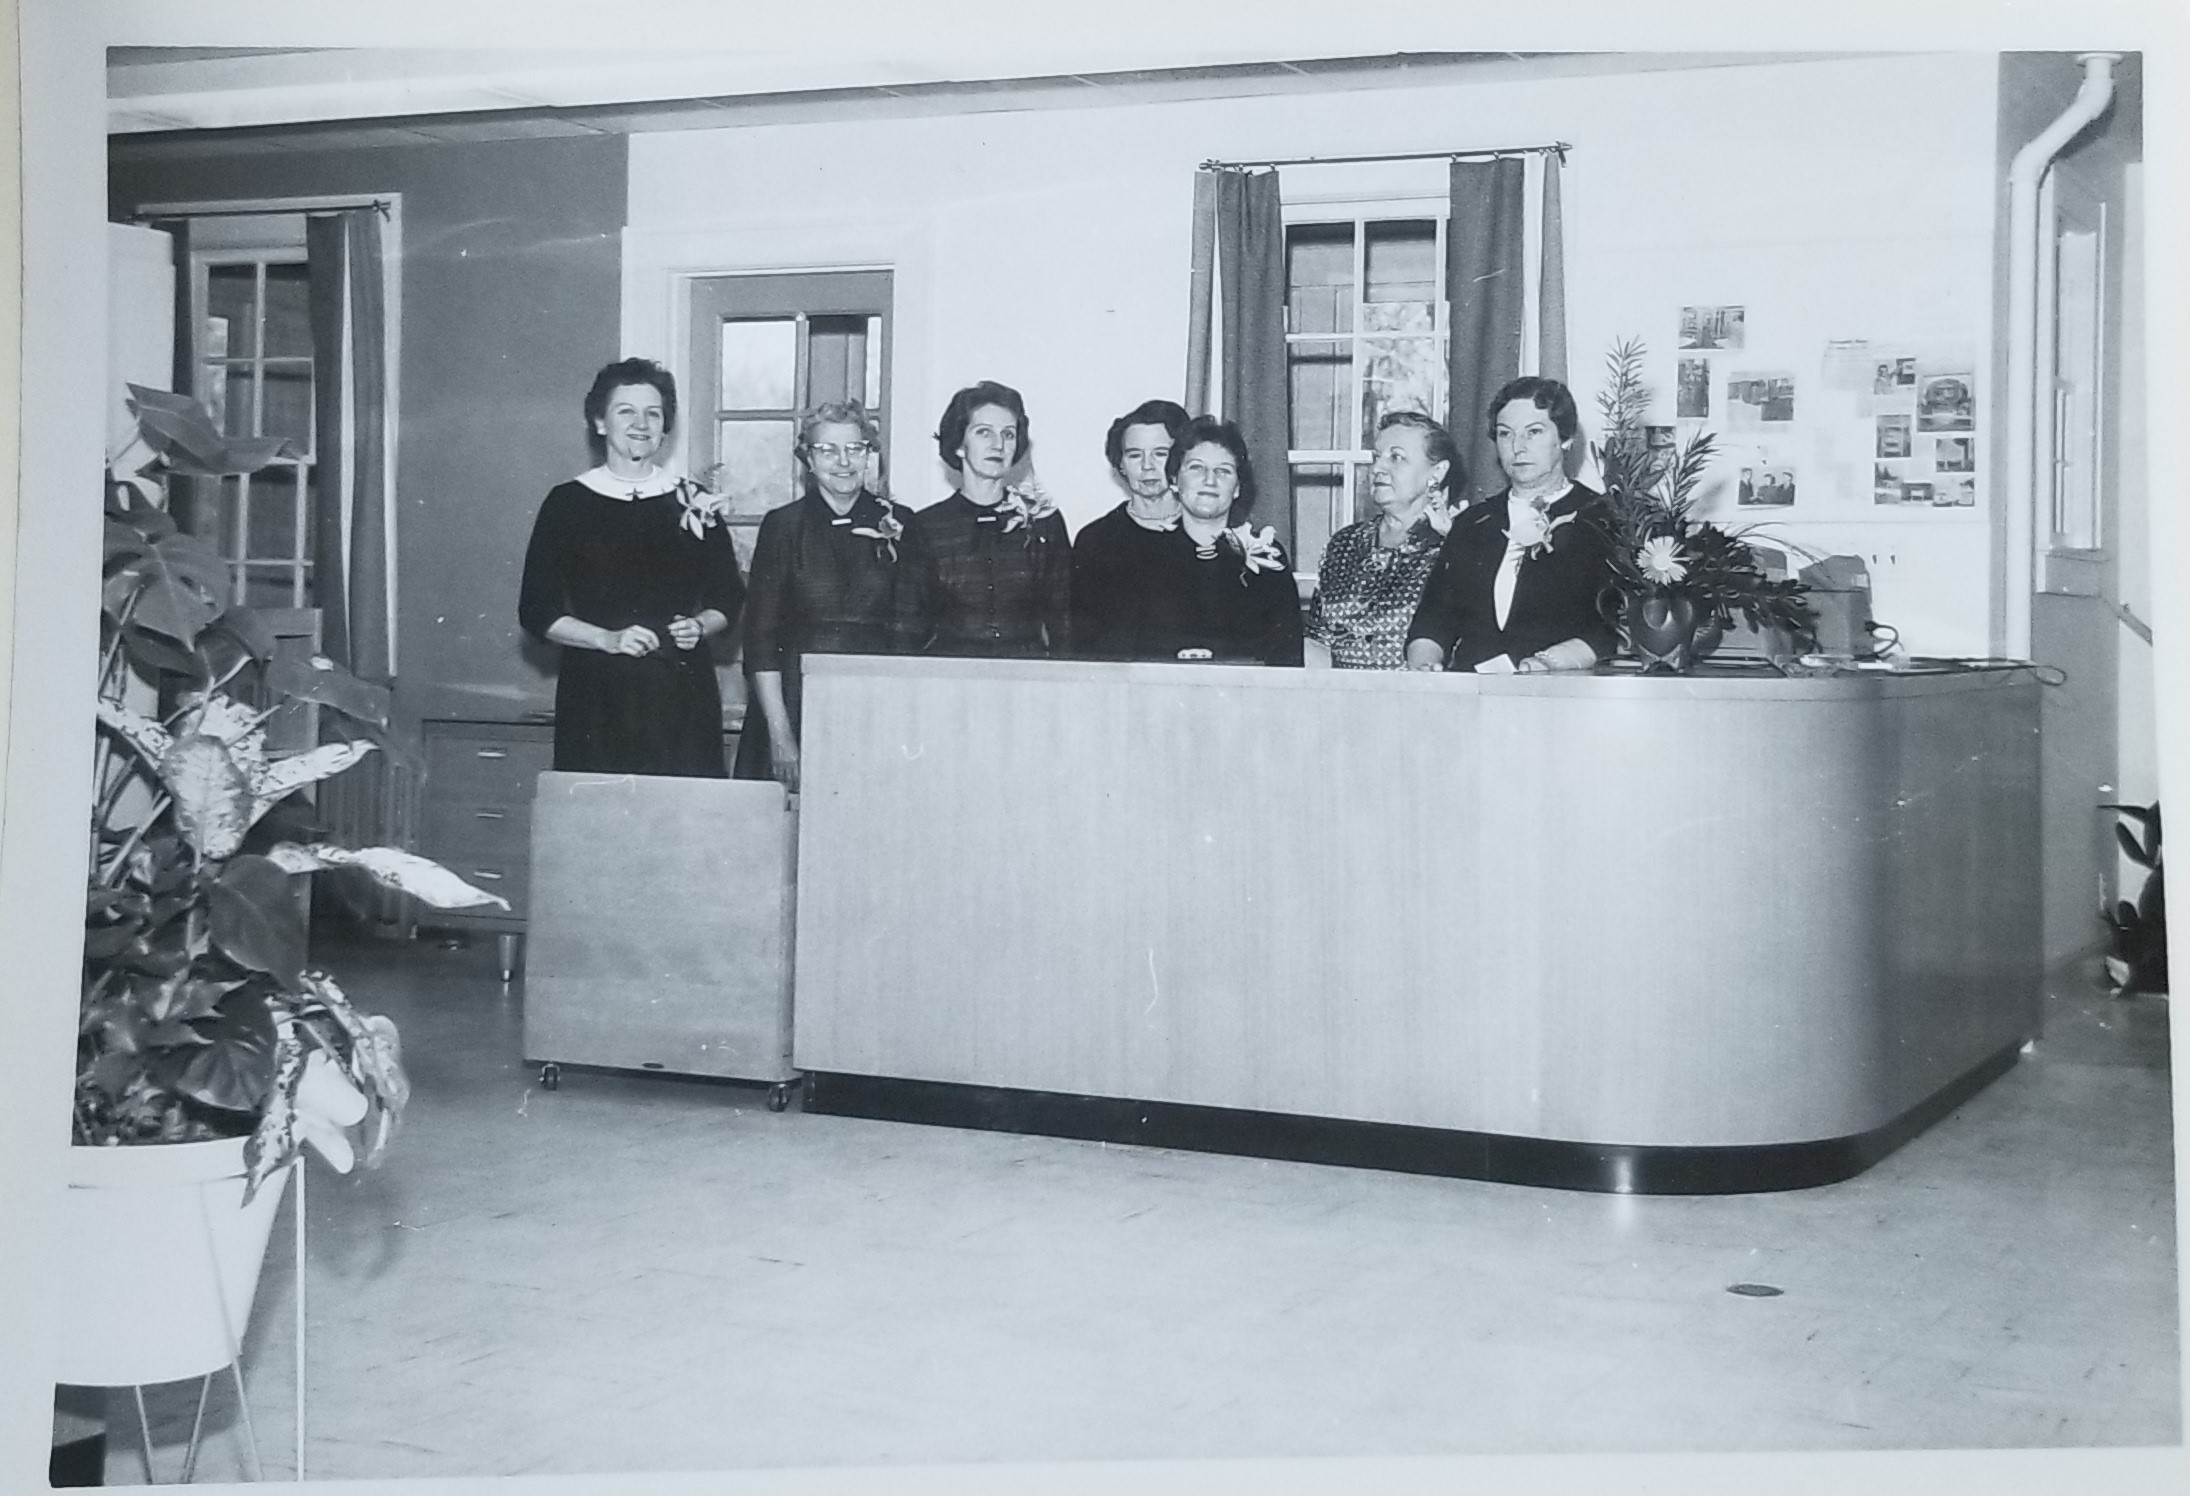 MTPL Staff on Library Opening Day in 1960